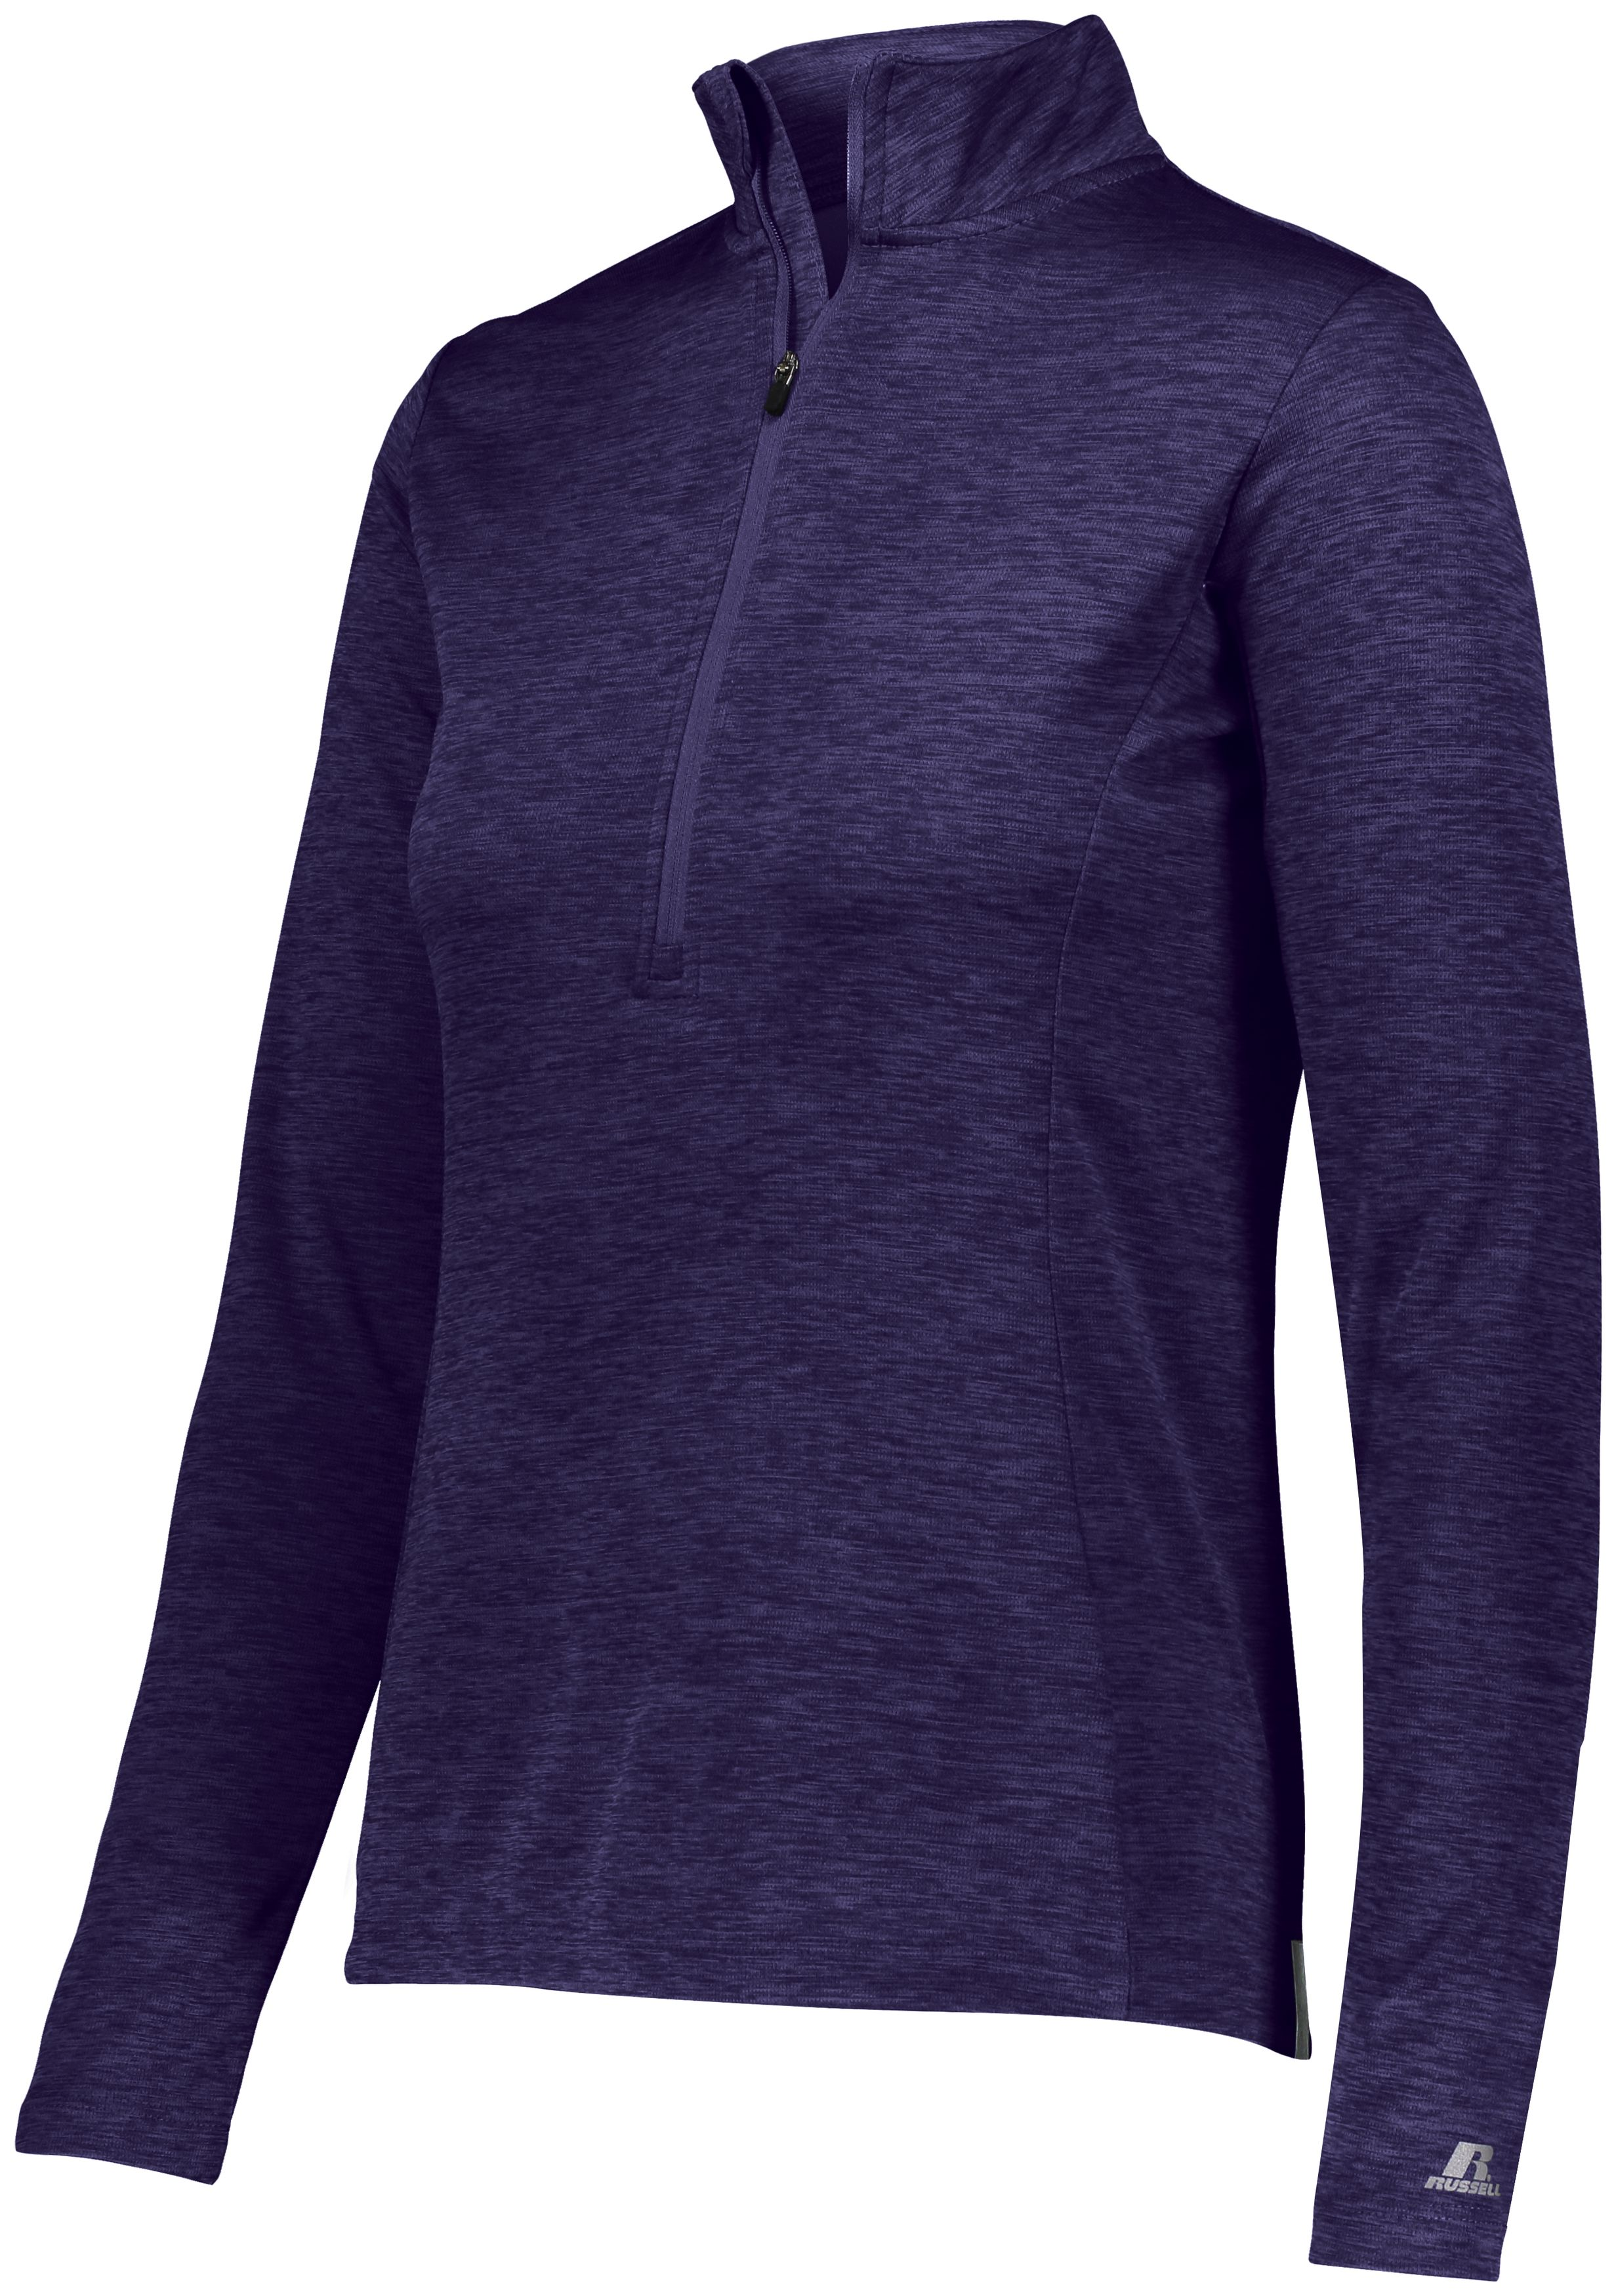 Ladies Dri-Power Lightweight 1/4 Zip Pullover - Purple